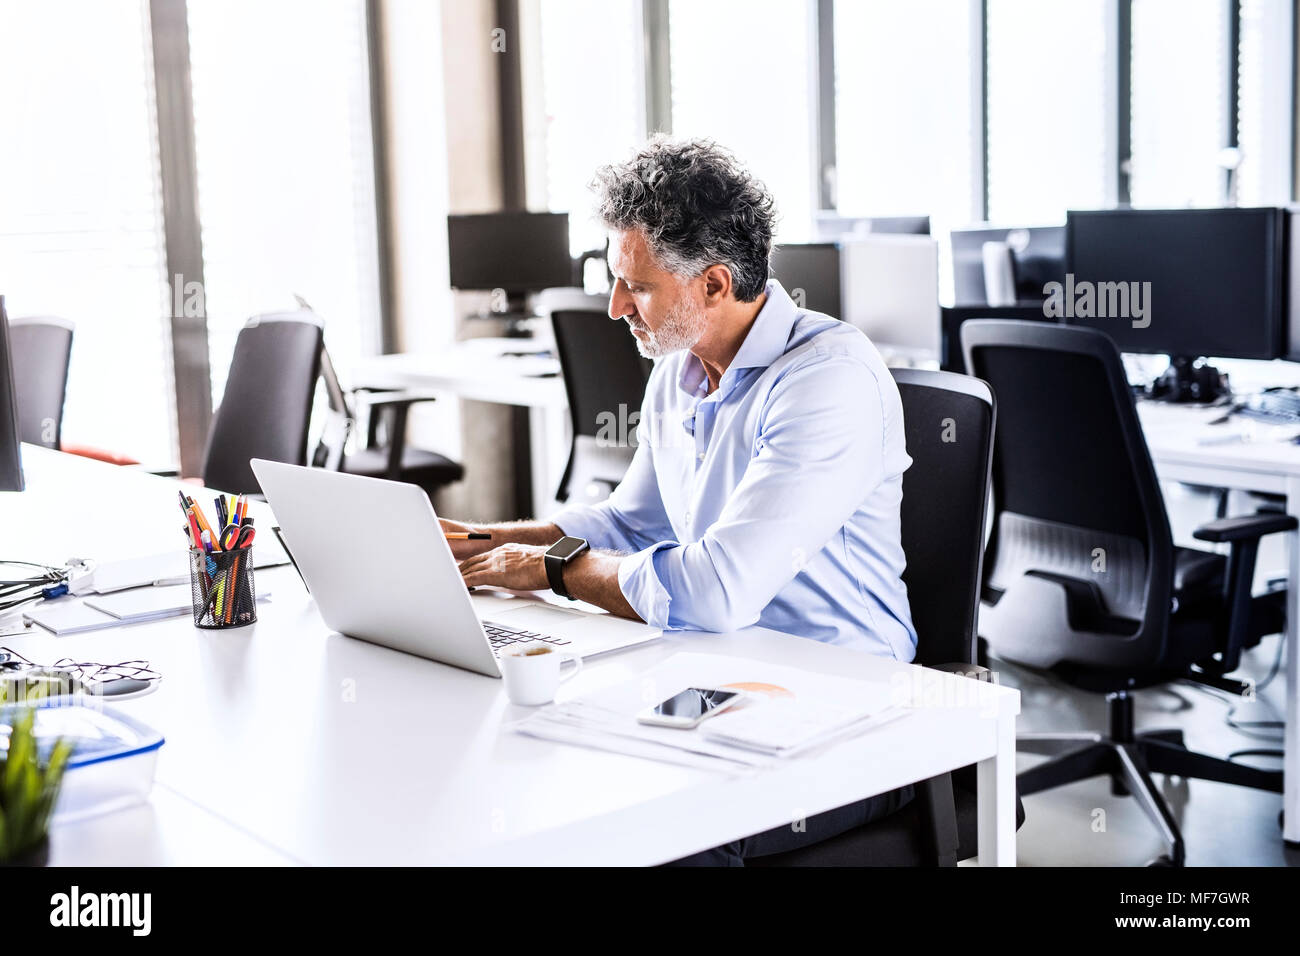 Mature businessman working at desk in office - Stock Image